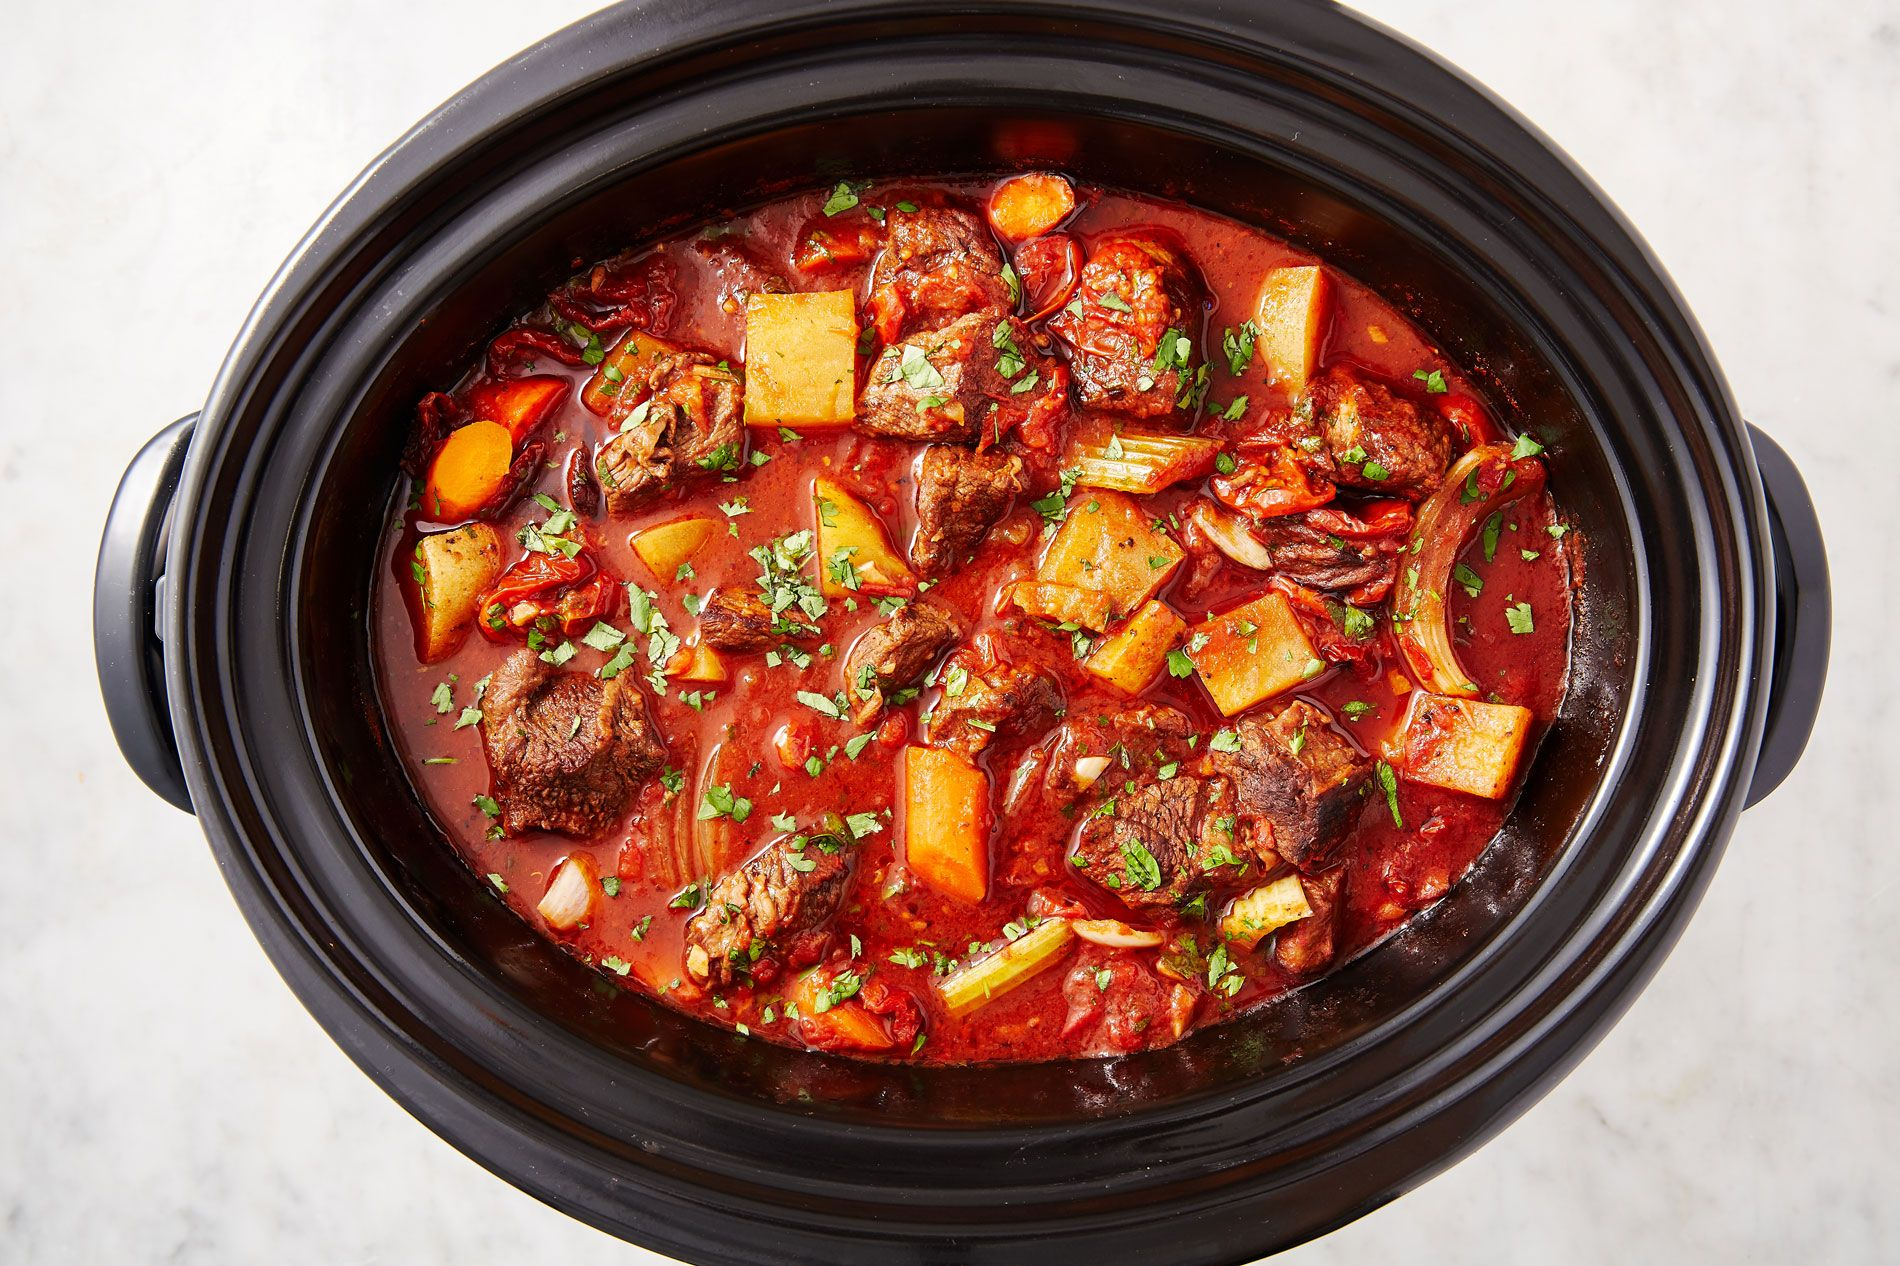 15 Best Slow Cooker Beef Recipes Easy Ways To Cook Beef In A Crock Pot